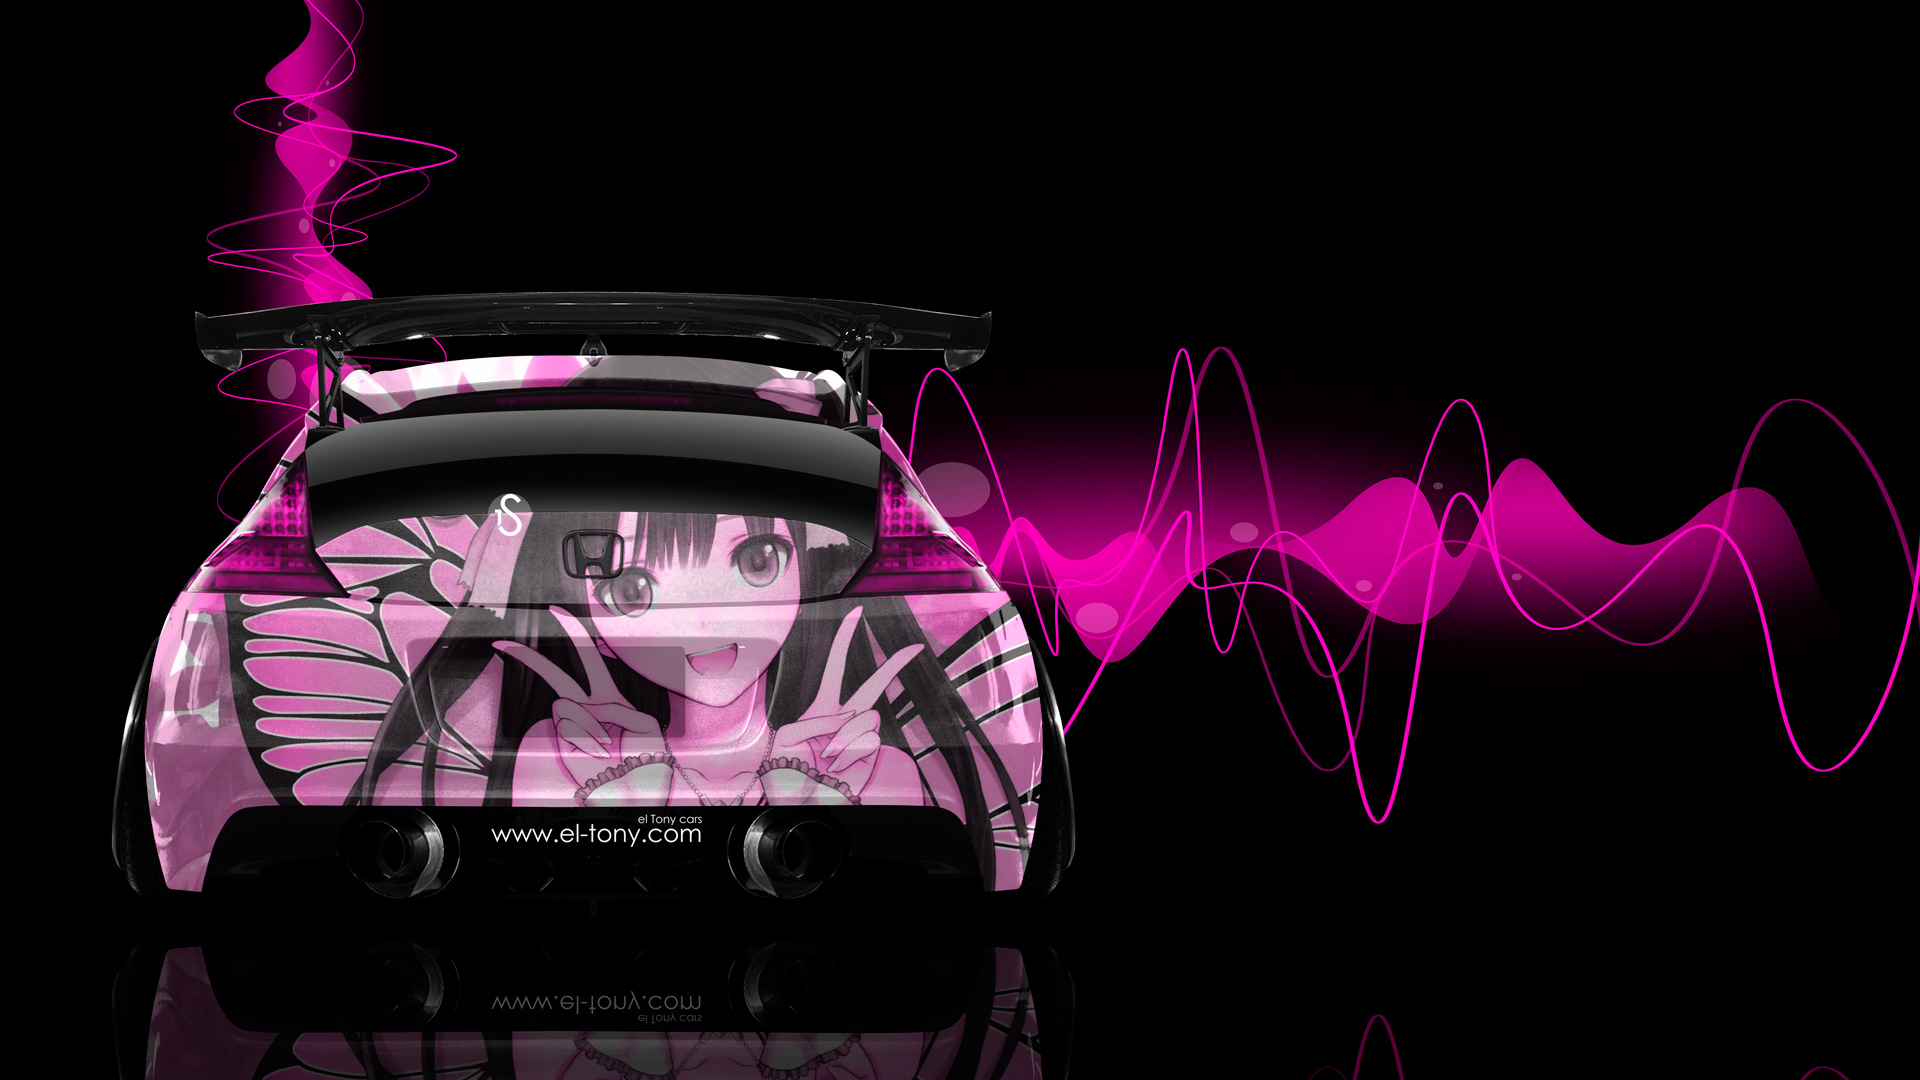 Honda-CR-Z-Tuning-Back-Anime-Aerography-Car-2014-Pink-Effects-HD-Wallpapers-design-by-Tony-Kokhan-[www.el-tony.com]